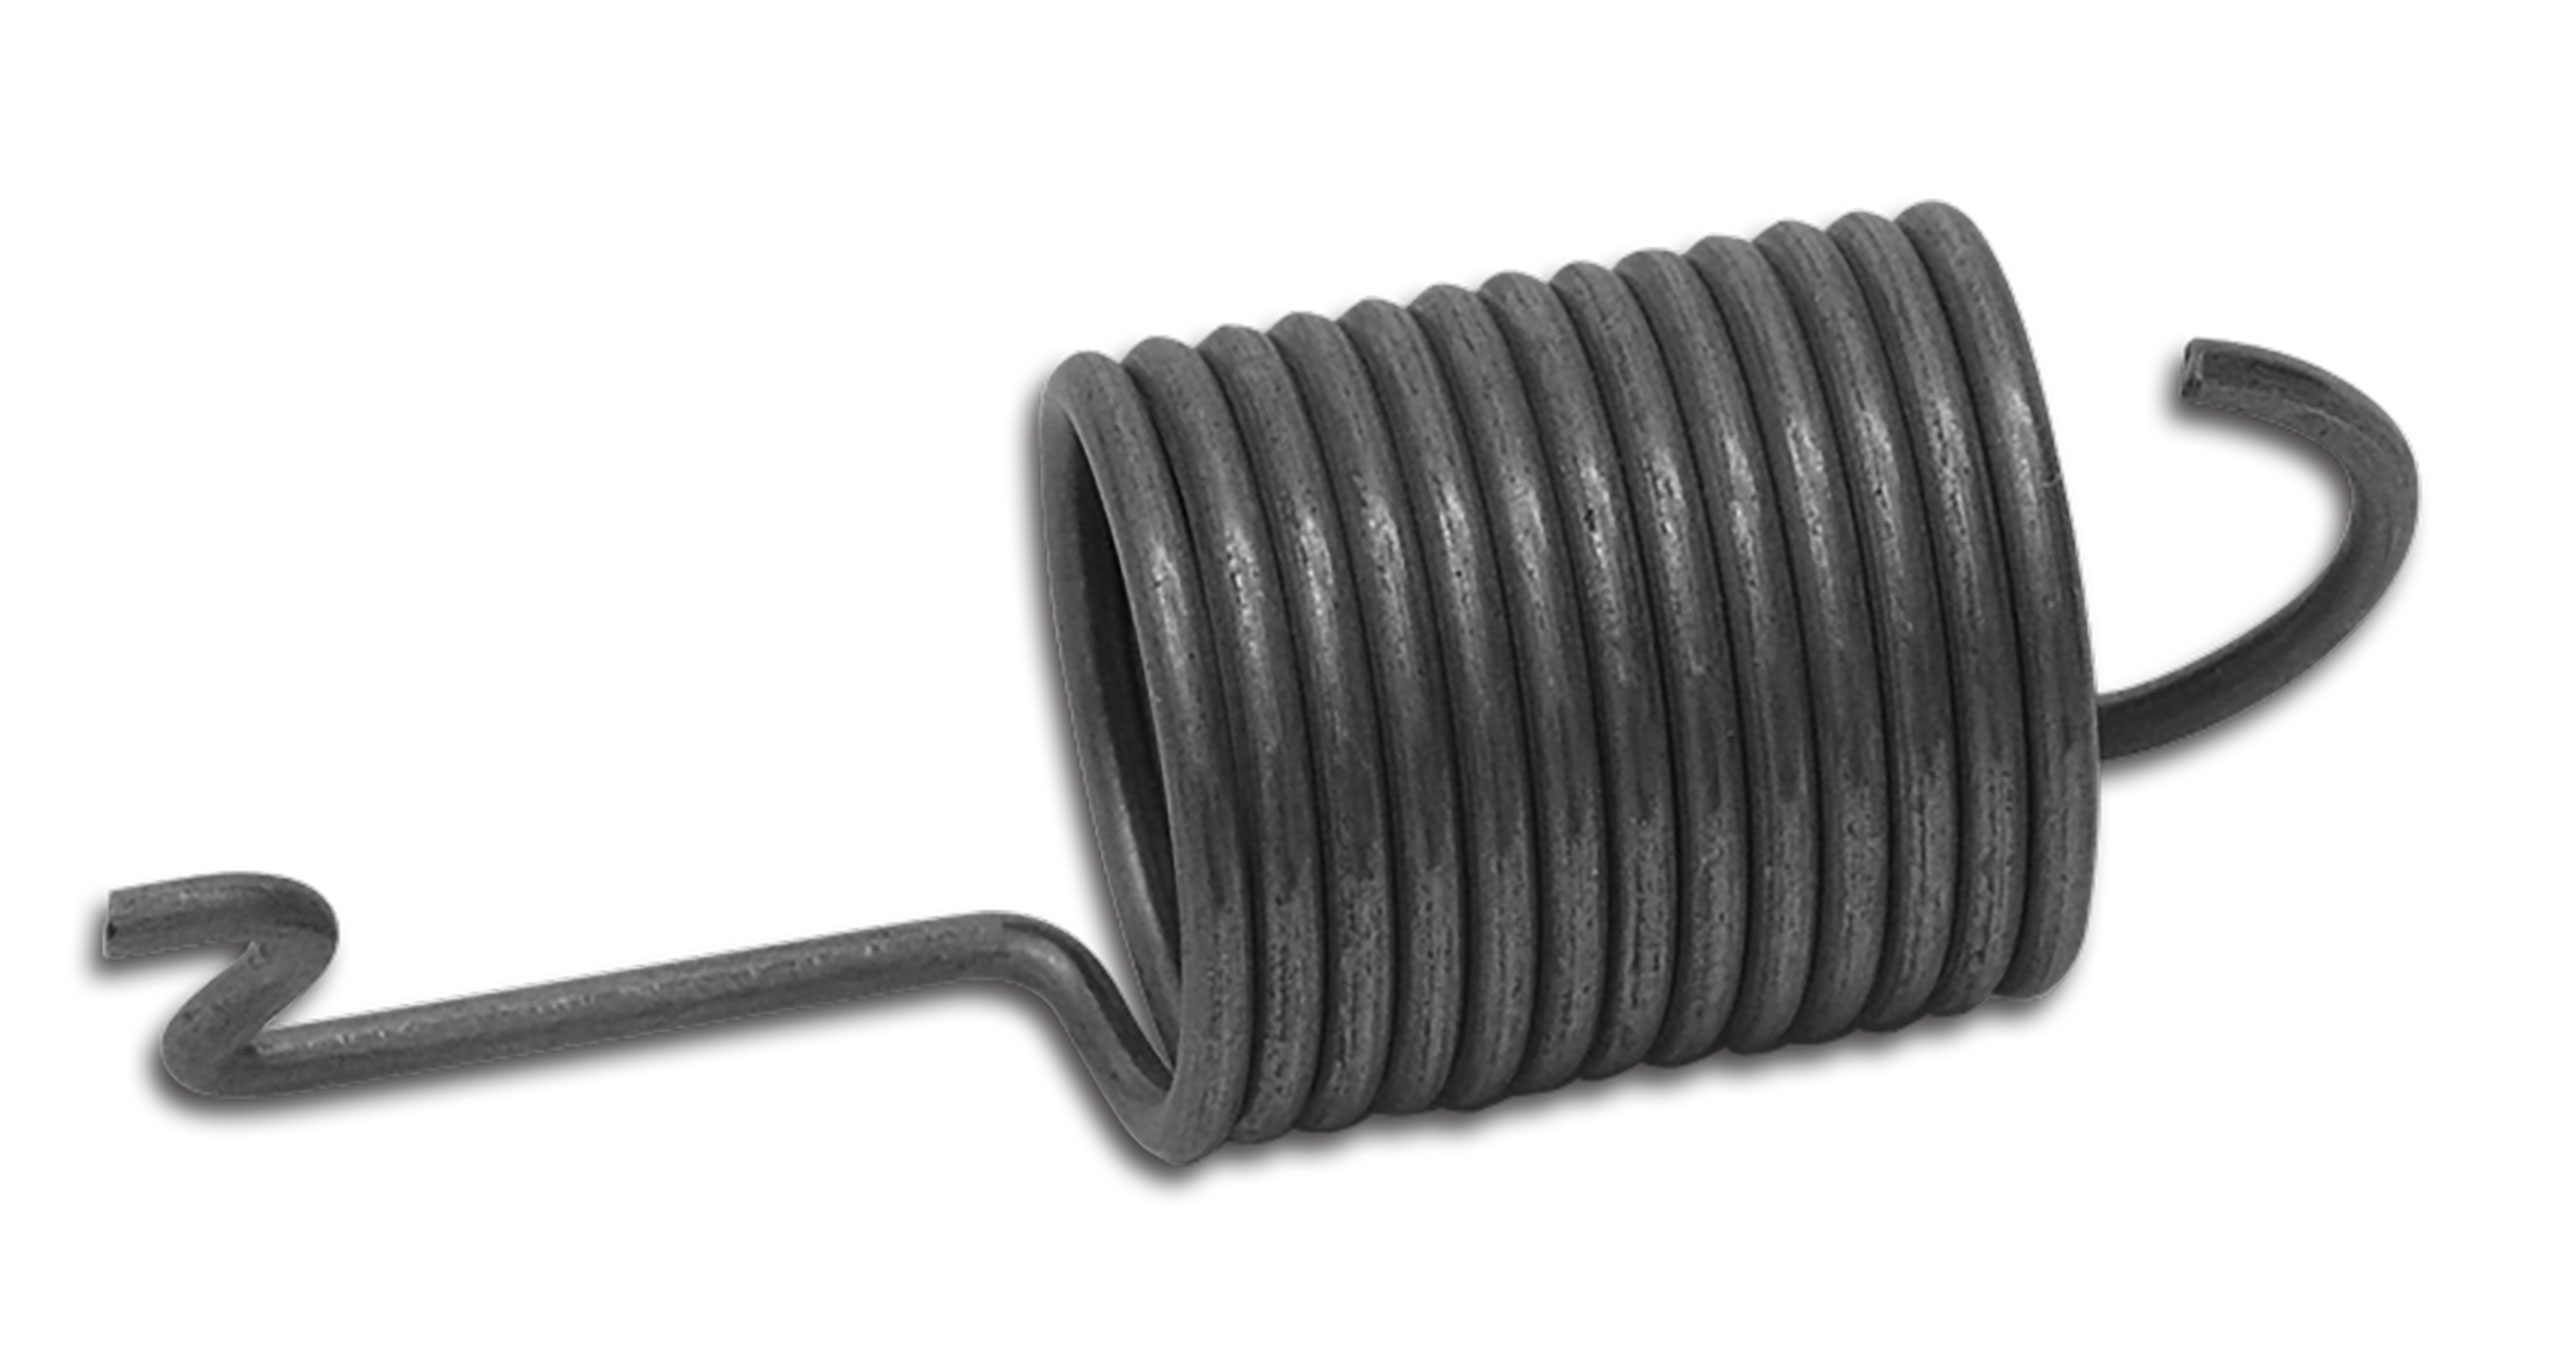 Auto Accessories of America 1964-1982 Chevrolet Corvette Park Brake Cable Return Spring.